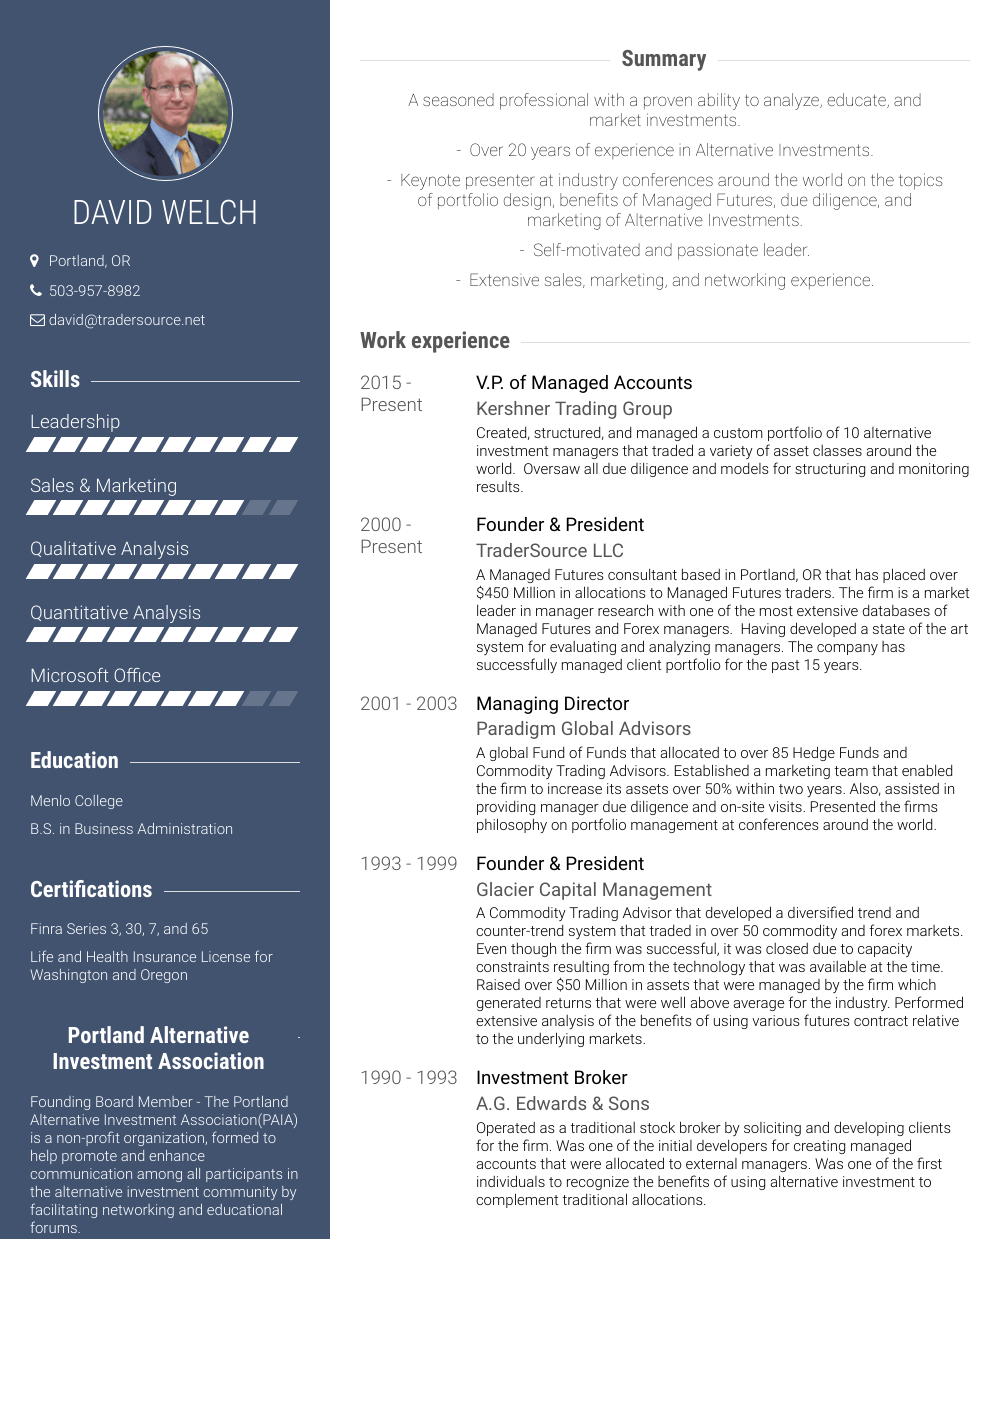 Founder & President - Resume Samples & Templates | VisualCV